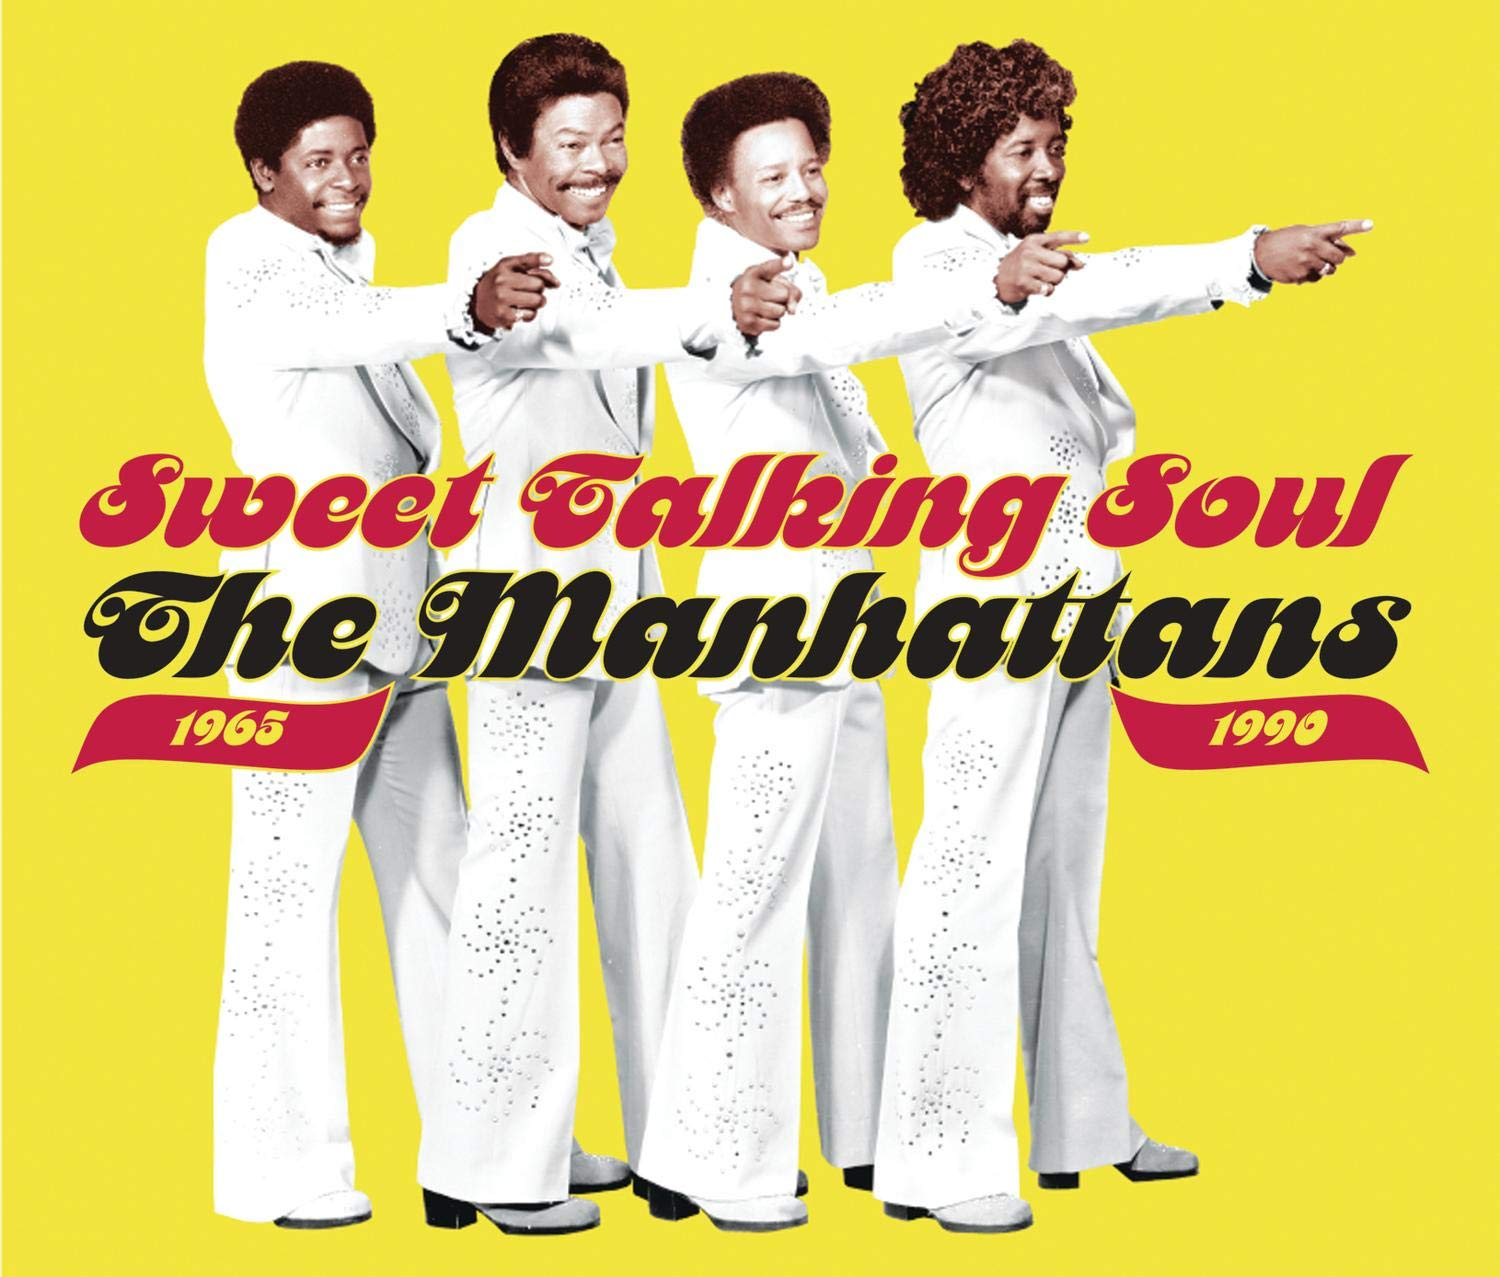 Sweet Talking Soul: The Manhattans 1965-1990 by SHOUT! FACTORY